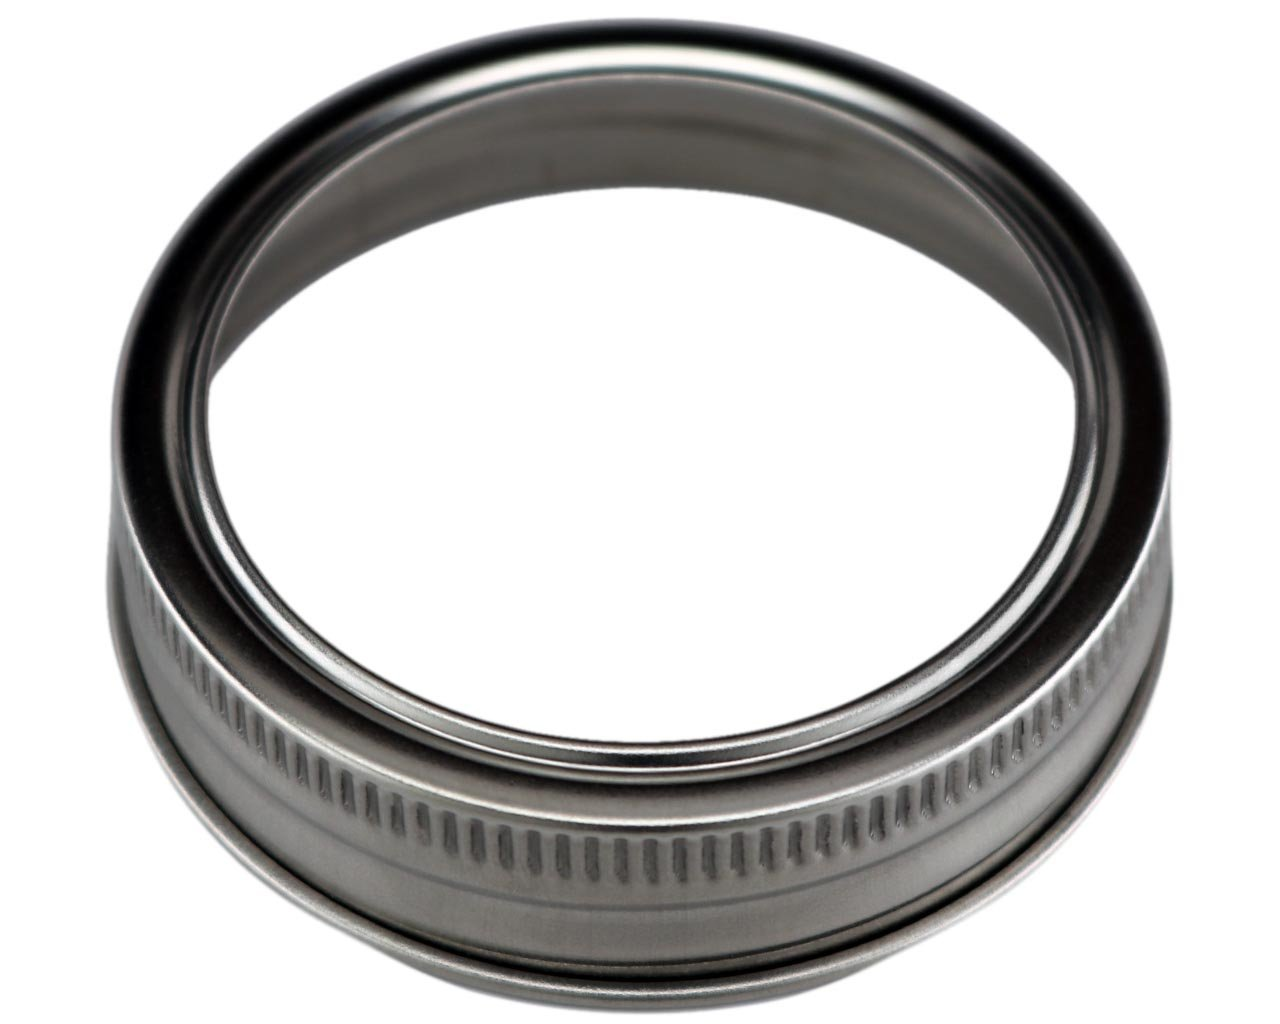 Stainless Steel Rust Resistant Bands / Rings for Mason, Ball, Canning Jars (5 Pack, Regular Mouth) by Mason Jar Lifestyle